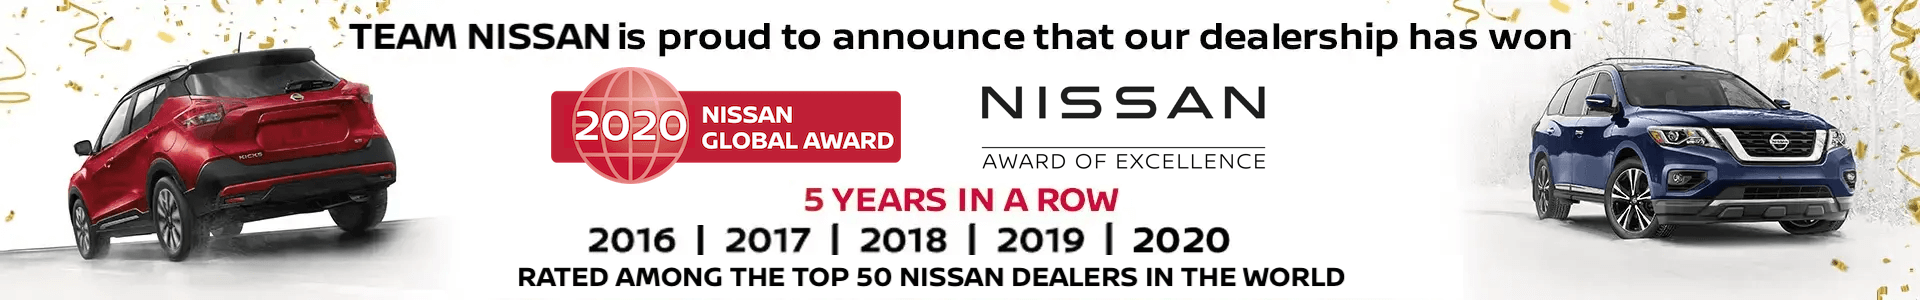 Team Nissan is proud to announce that our dealership has won 2019 Nissan Global Award Nissan Award of Excellence 3 years in a row